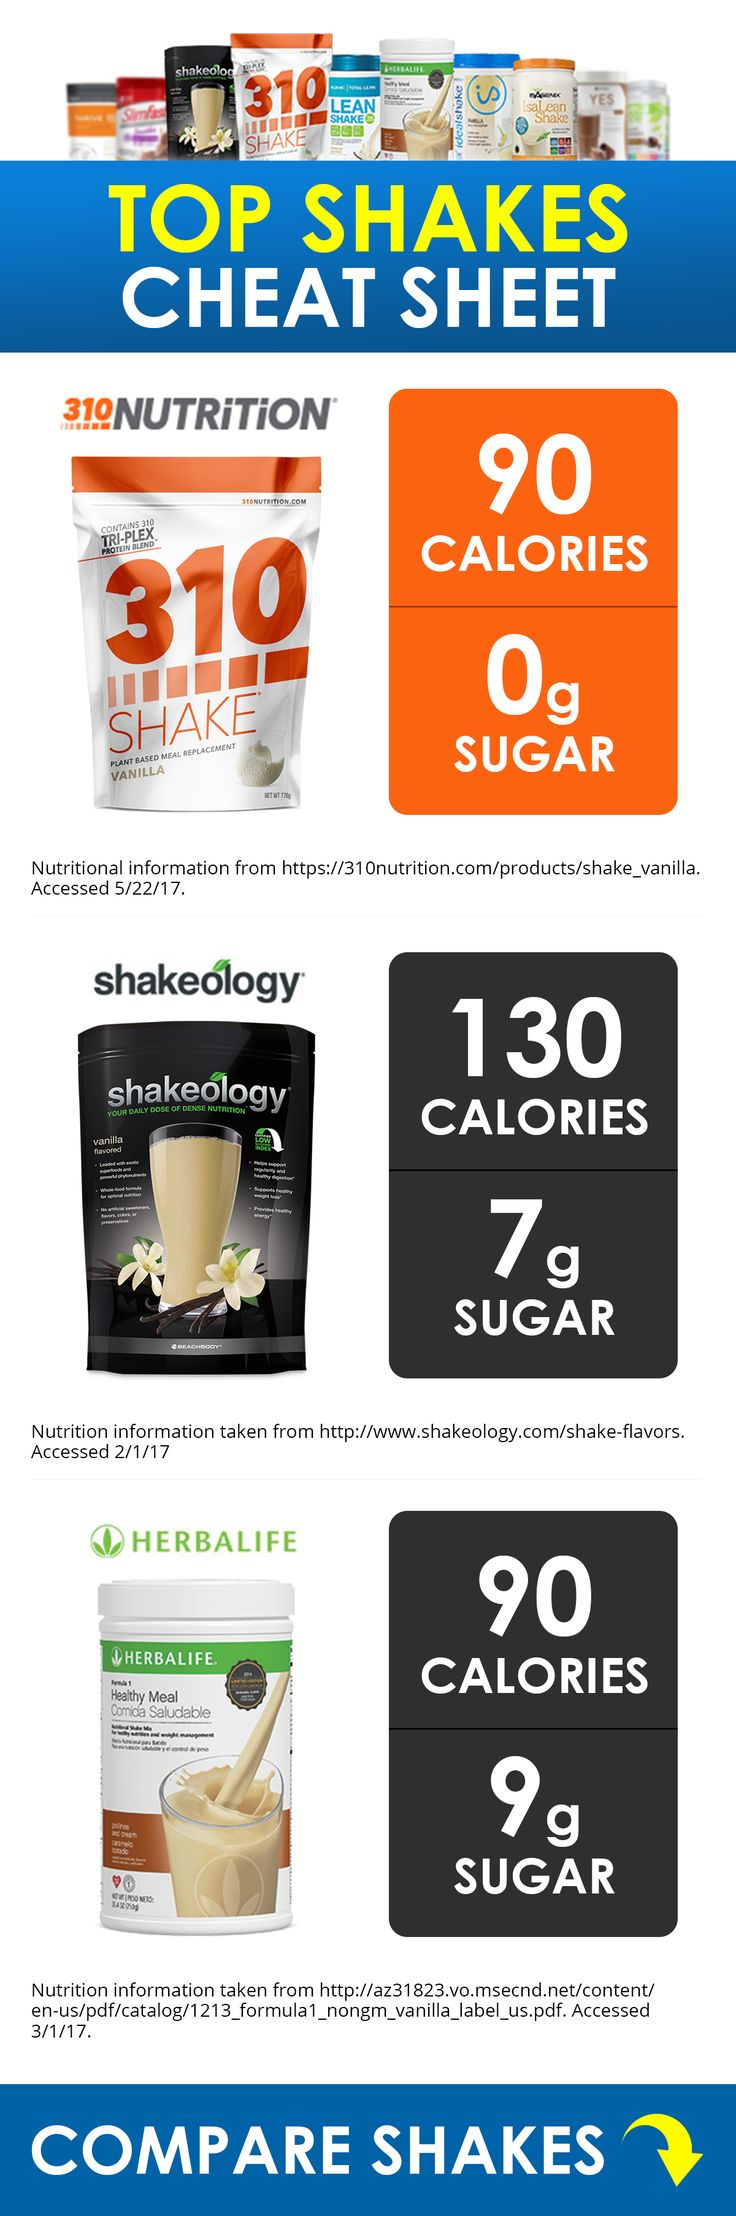 Visit The Site To Compare Top Rated Shakes!